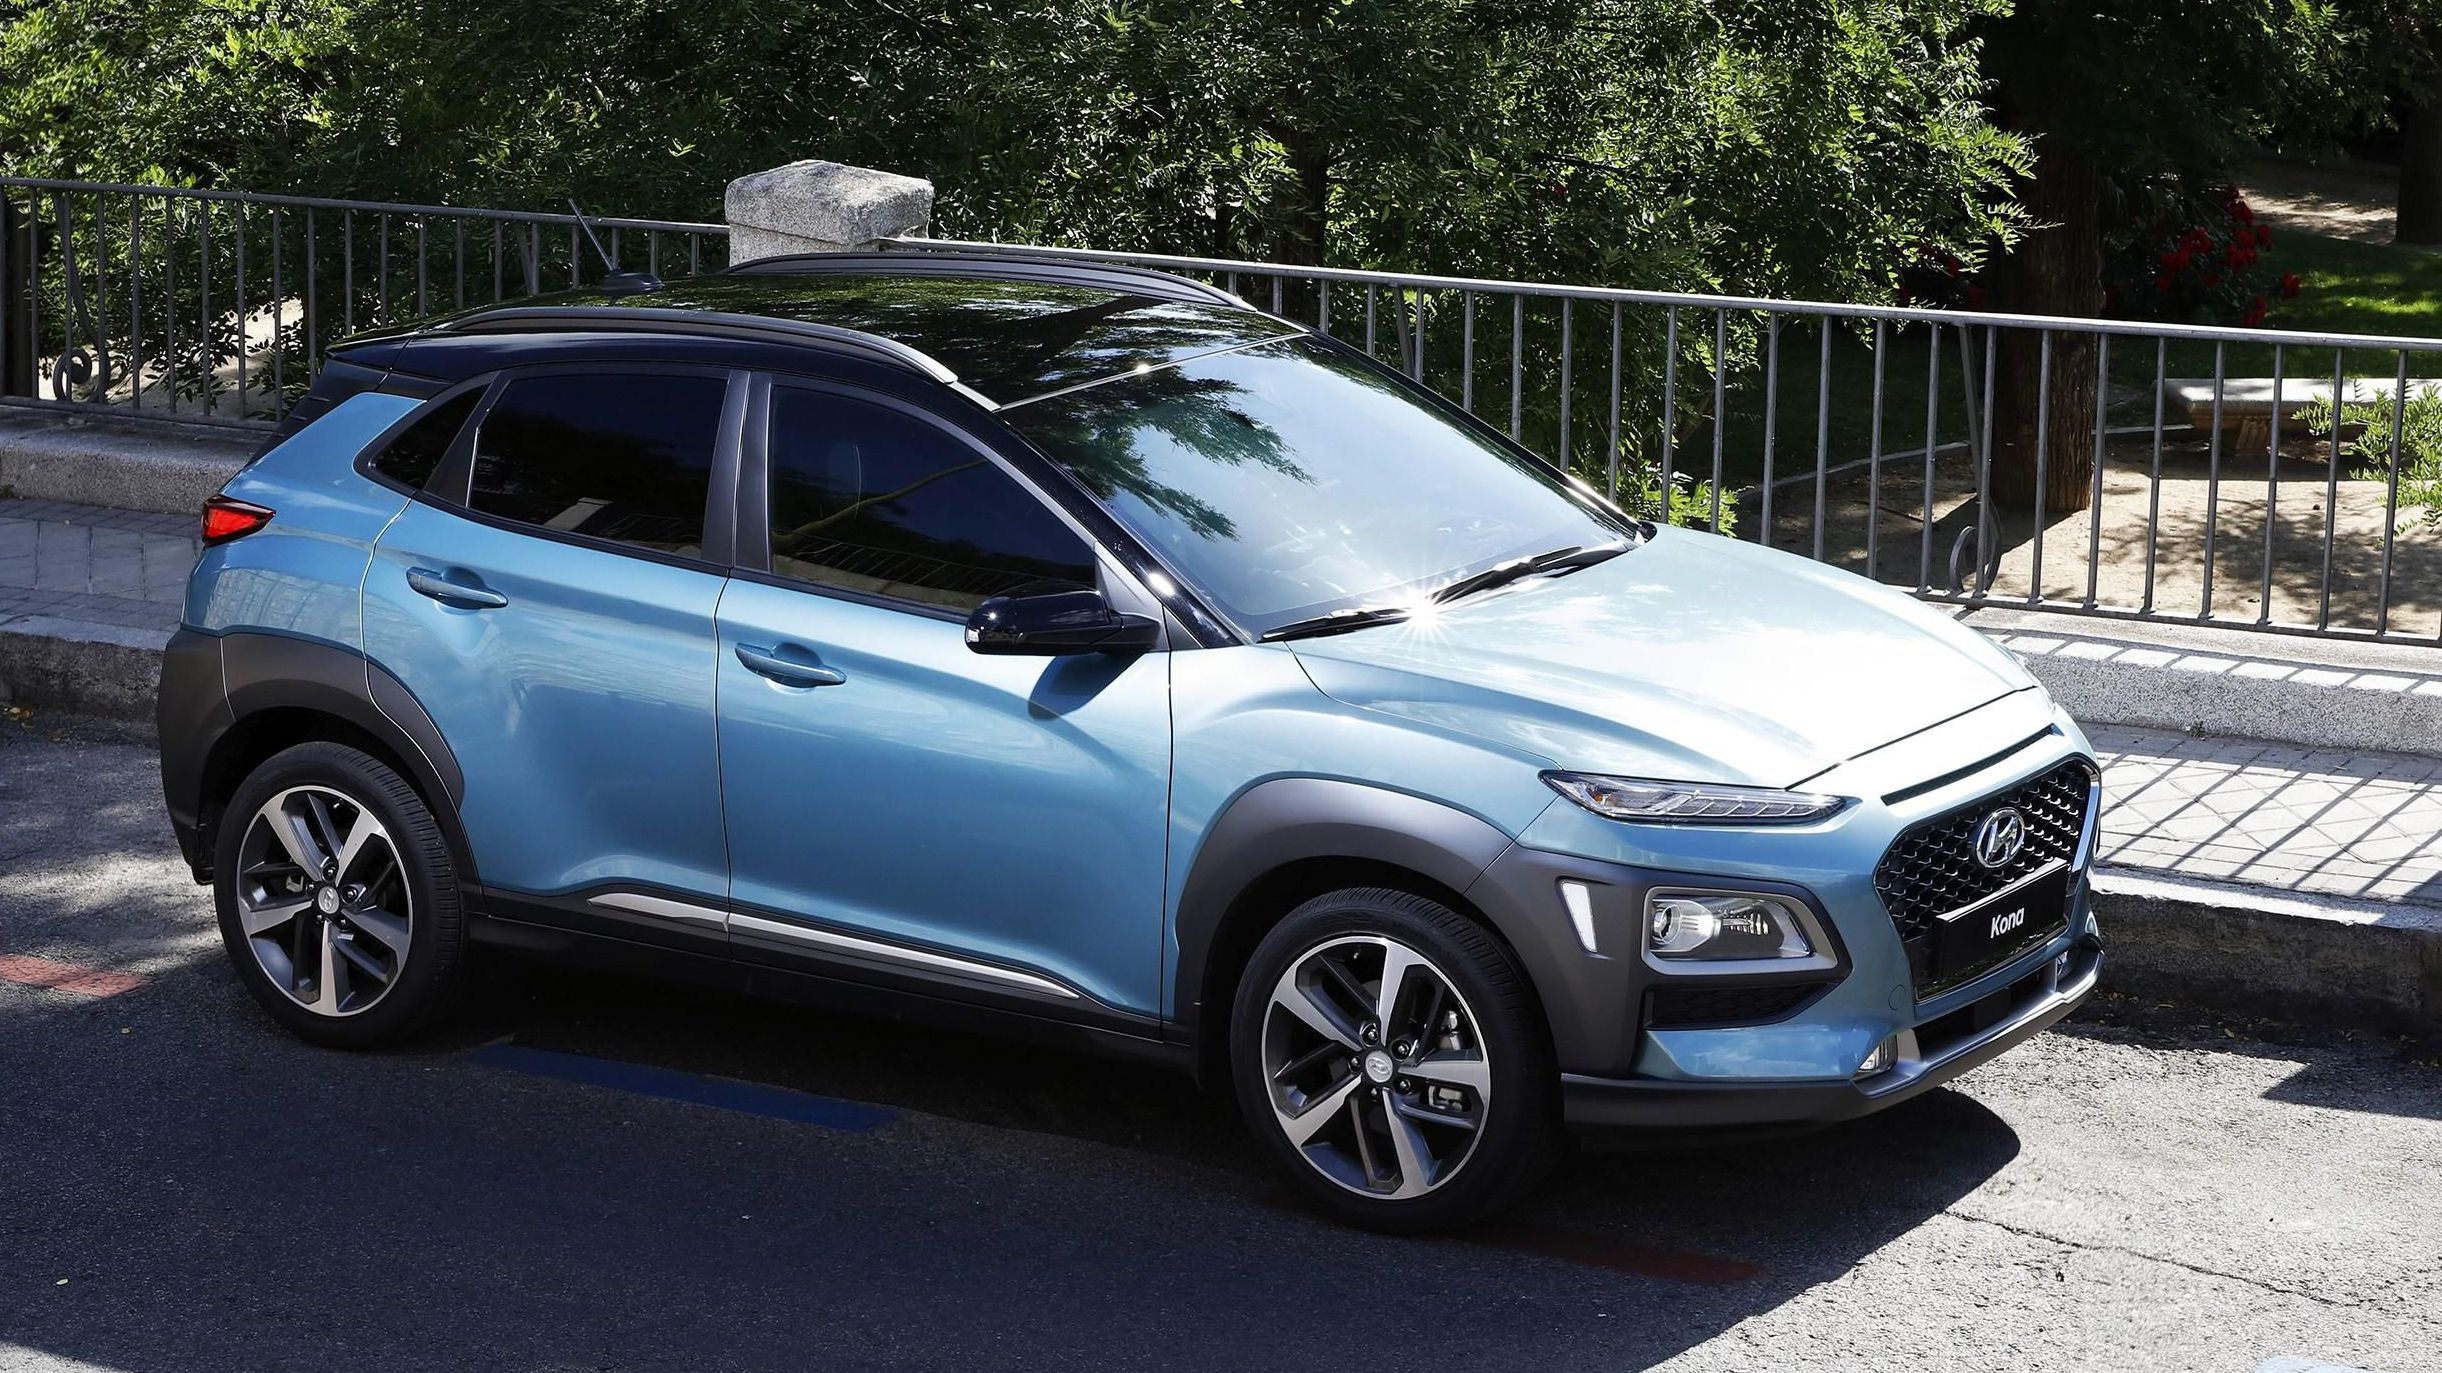 The First Vehicle To Use Their New Electric Platform Is Expected Be A Suv Prototype Was Spotted Earlier This Year Which Will An